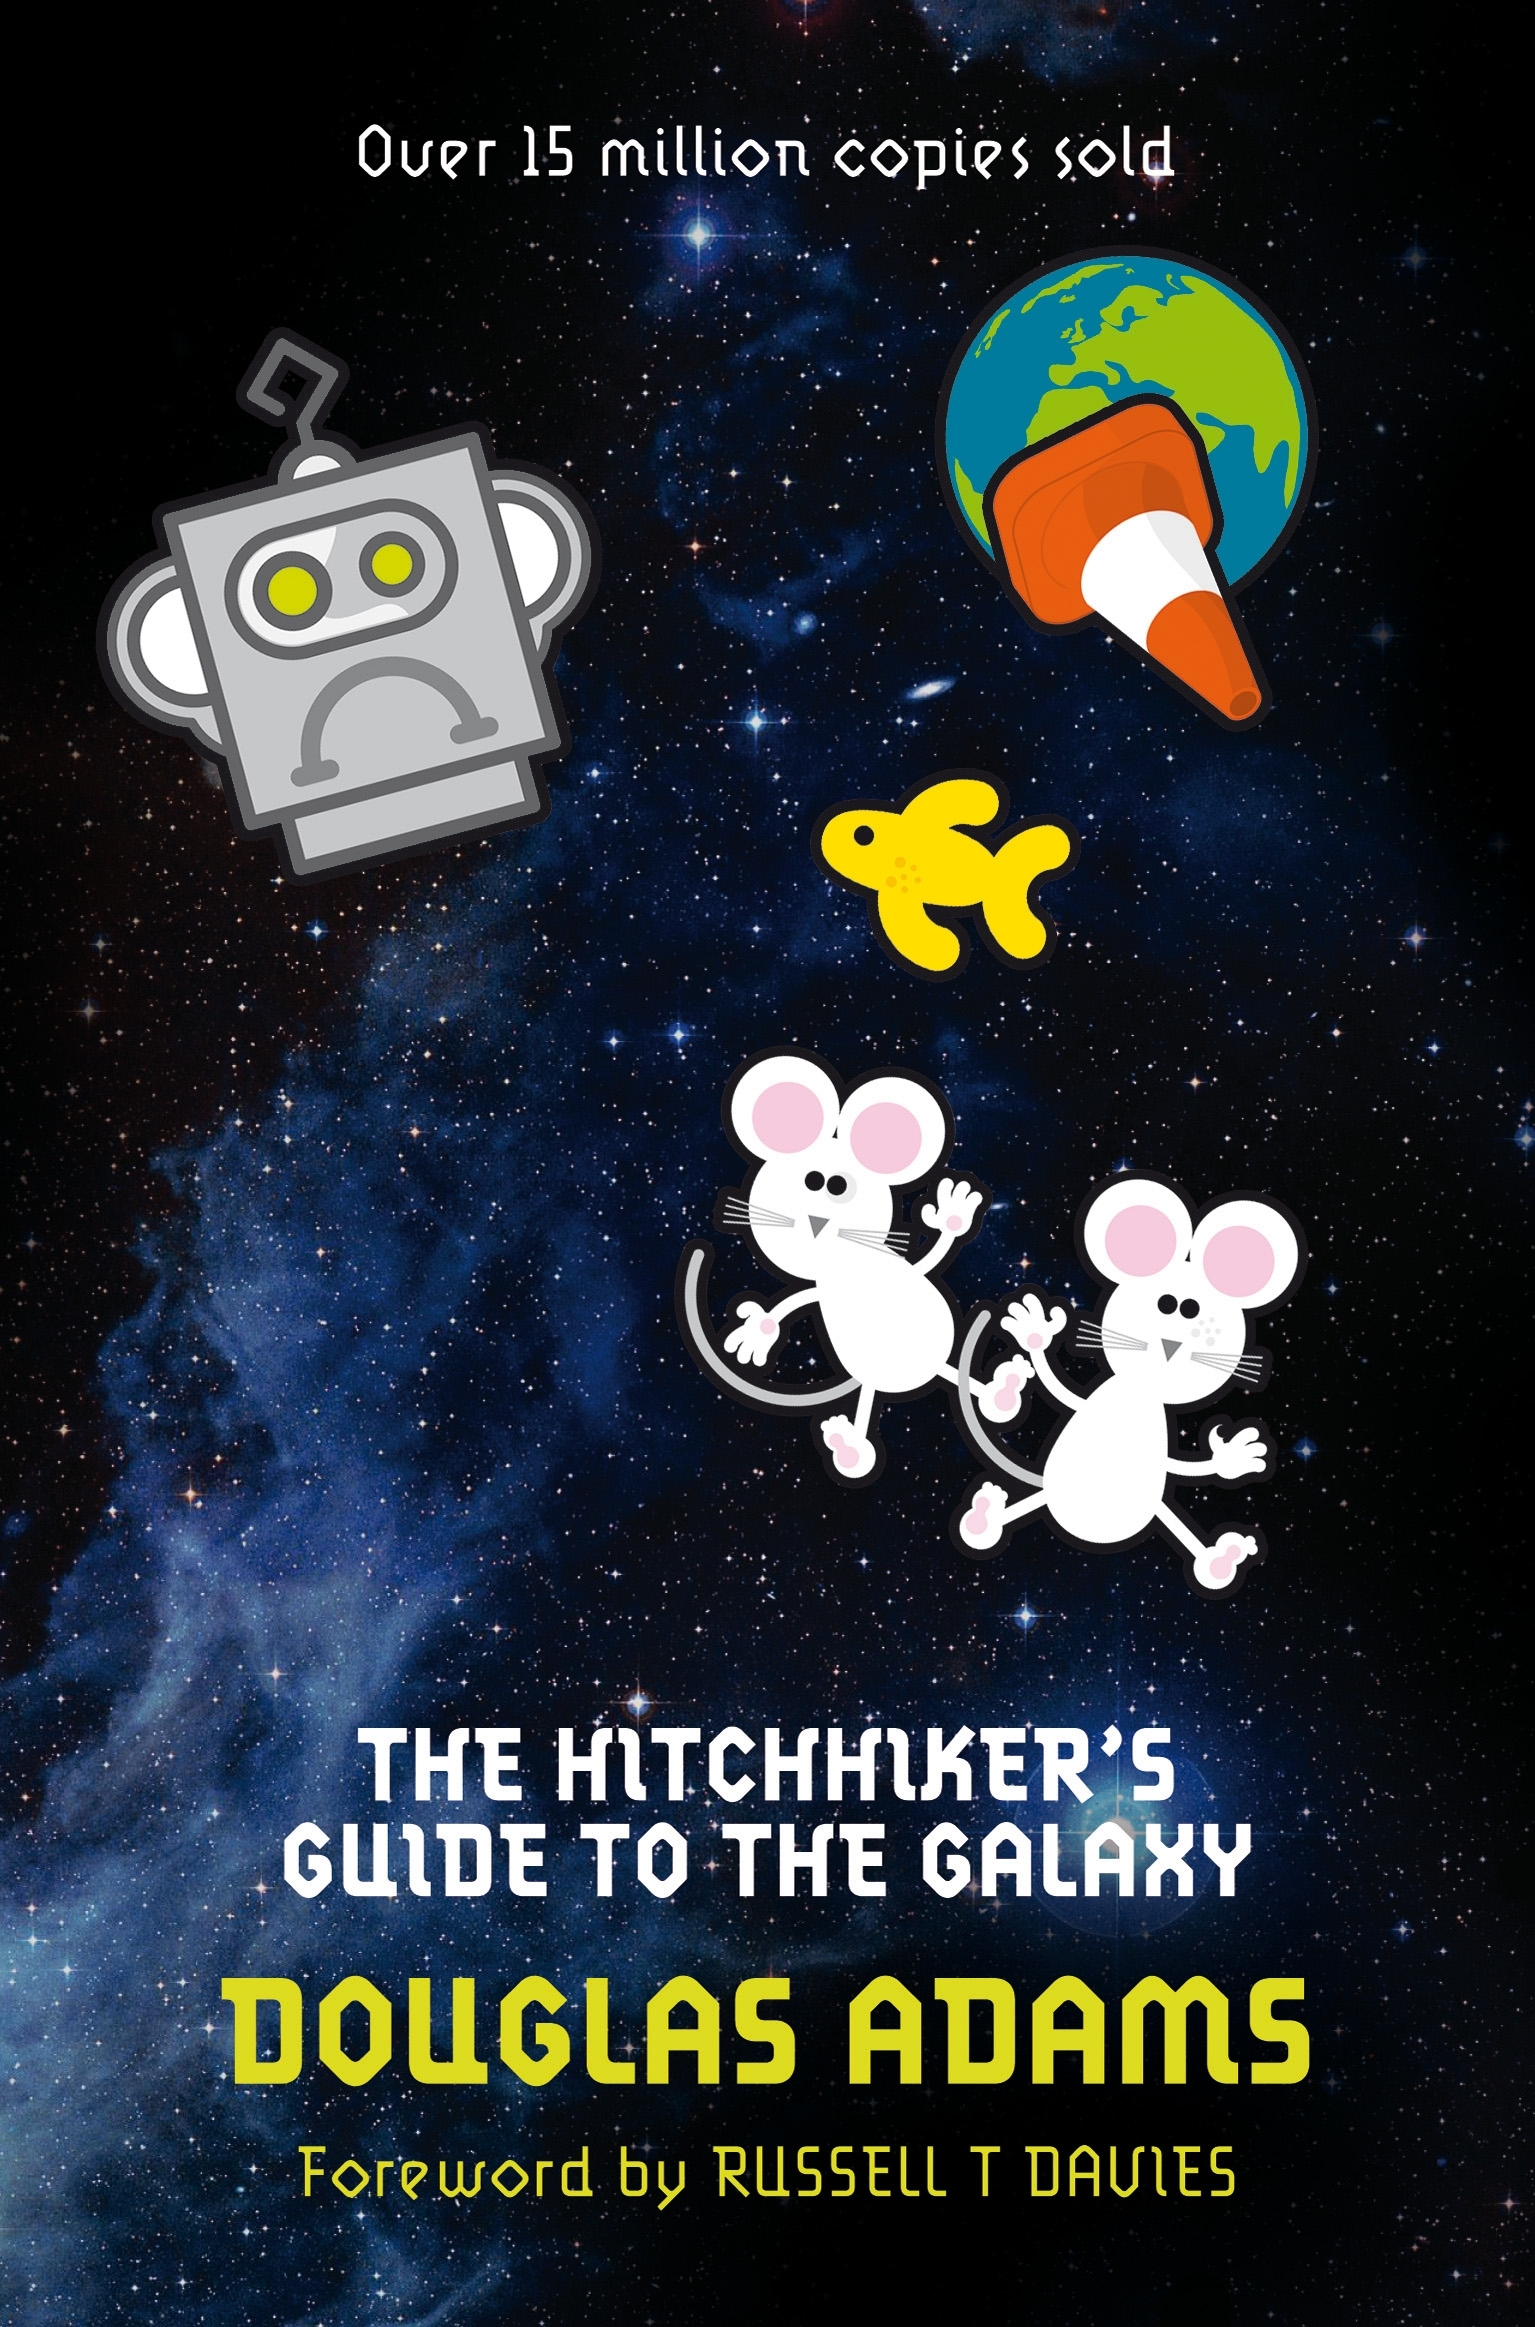 The Hitchhiker's Guide to the Galaxy new cover